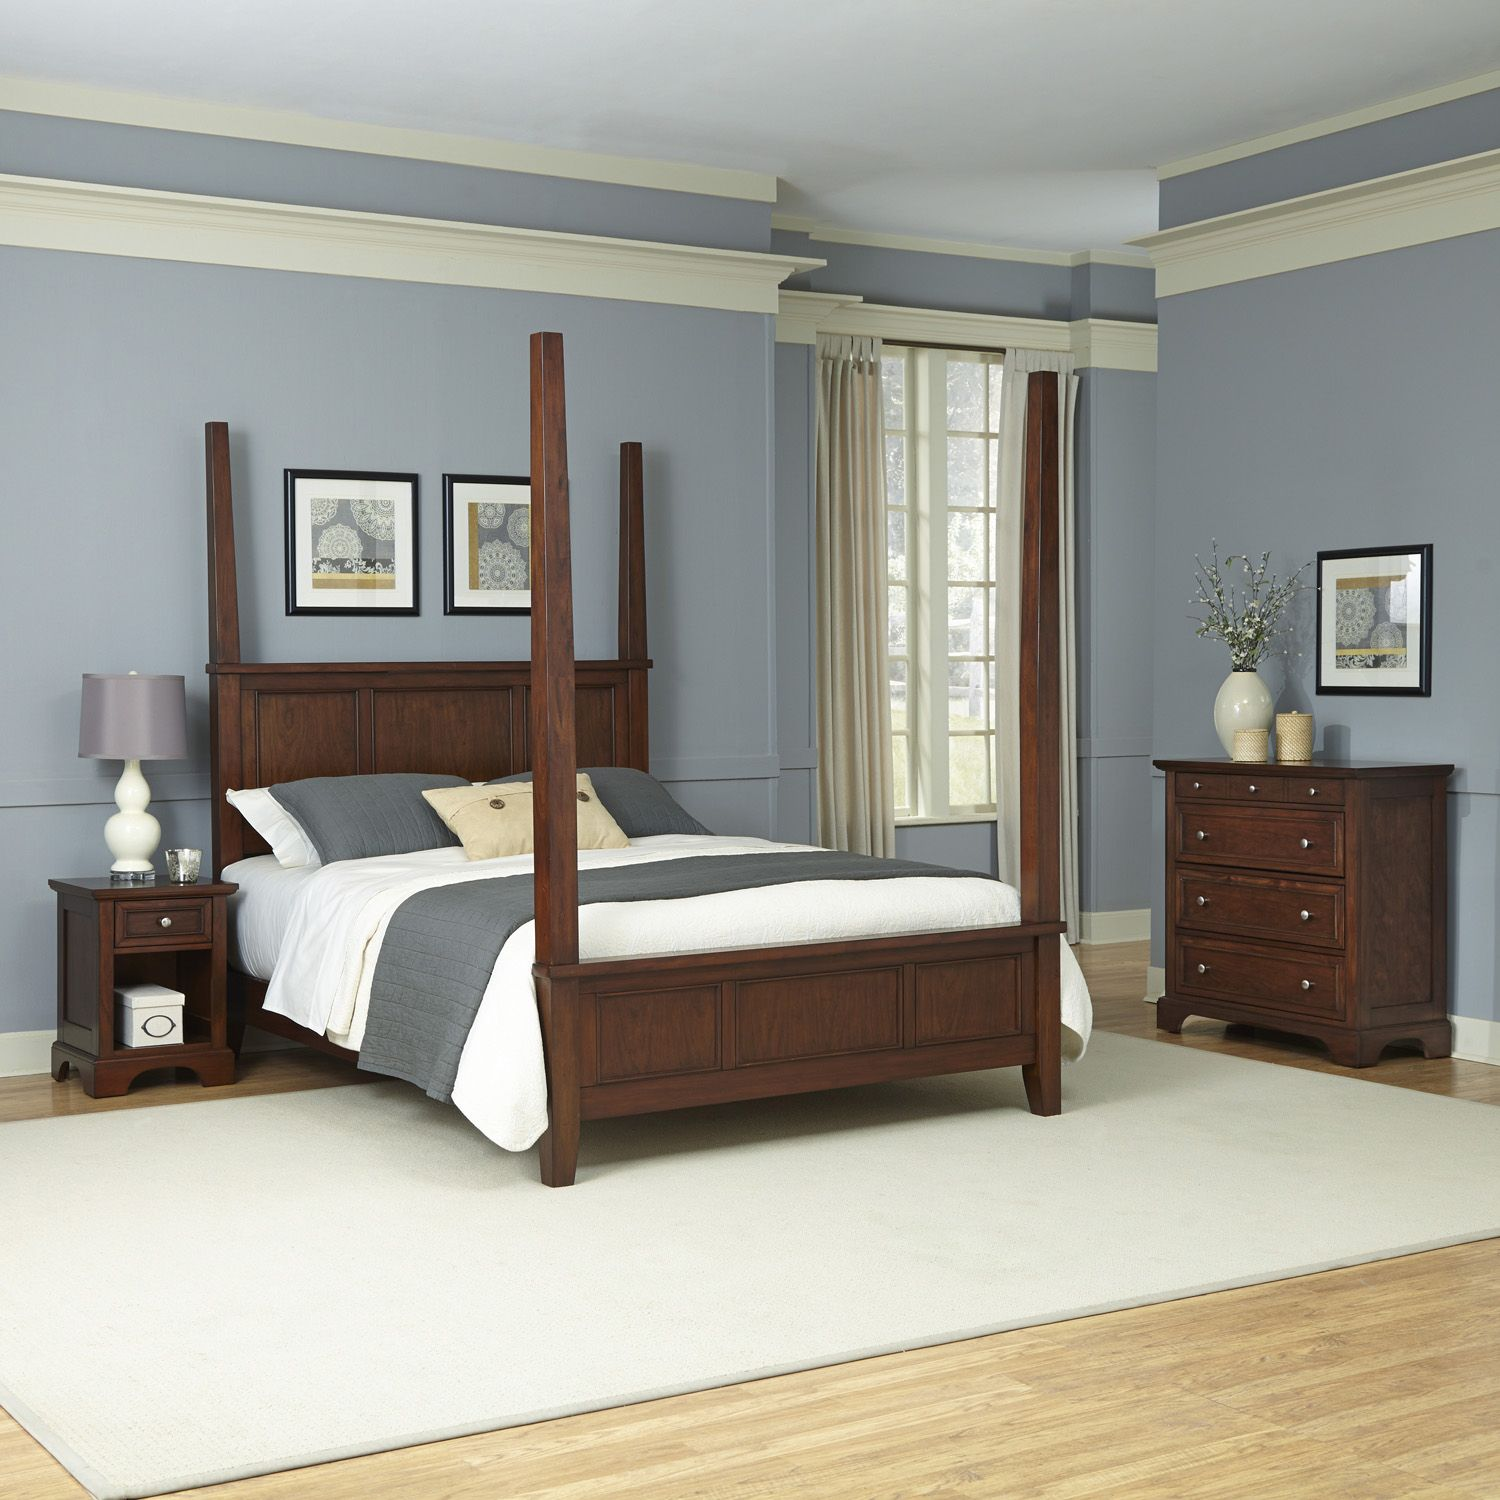 Ideal Home Styles piece Chesapeake Poster Bedroom Set